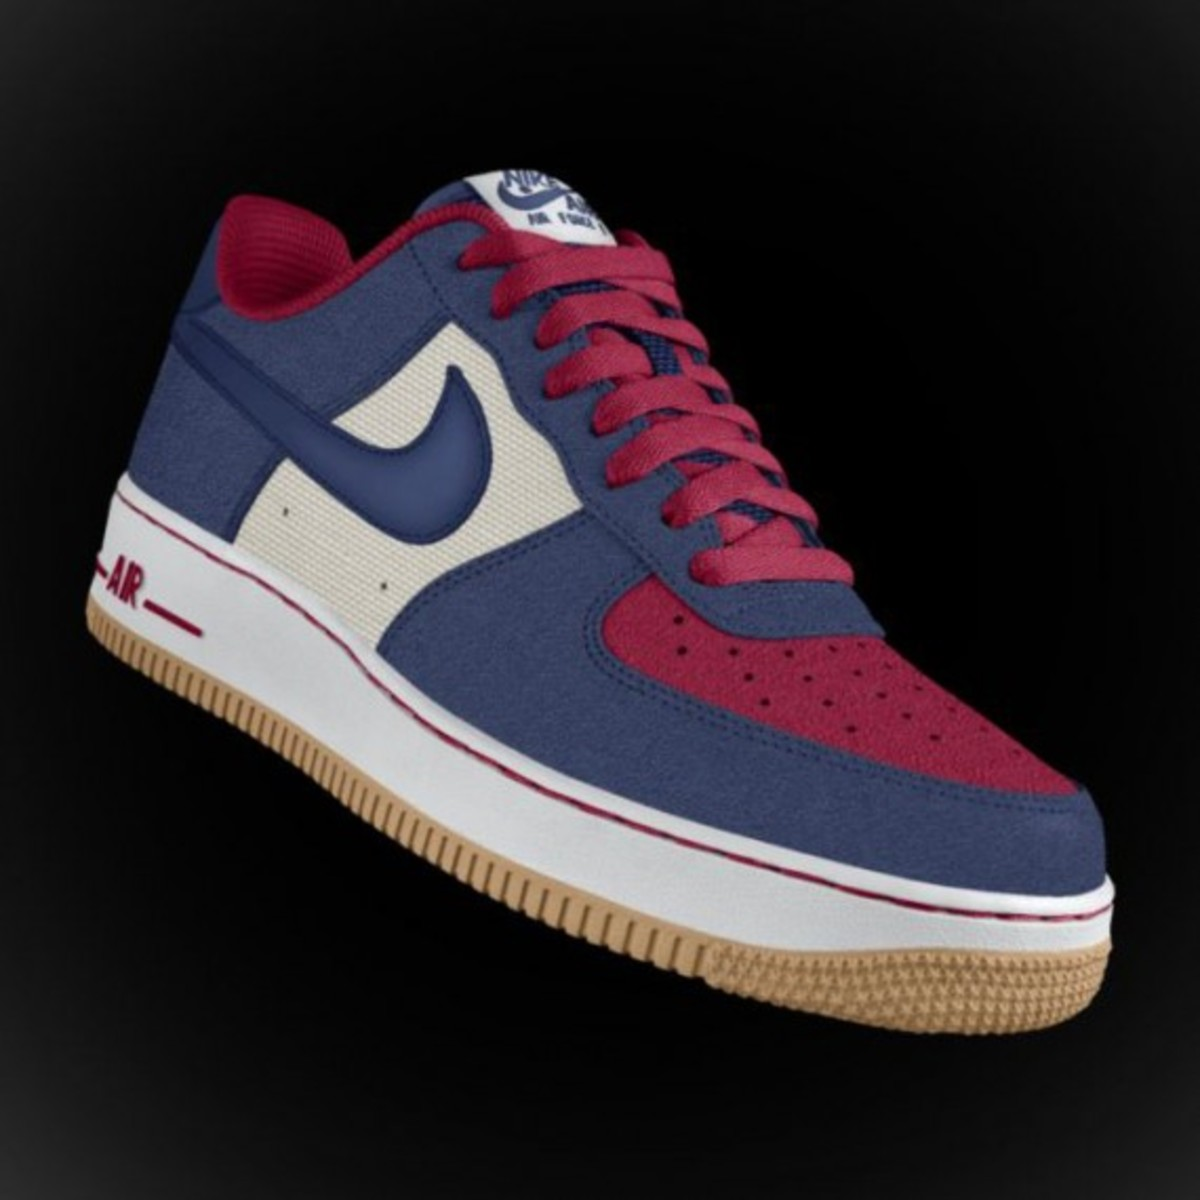 nike-air-force-1-id-gum-rubber-outsole-02